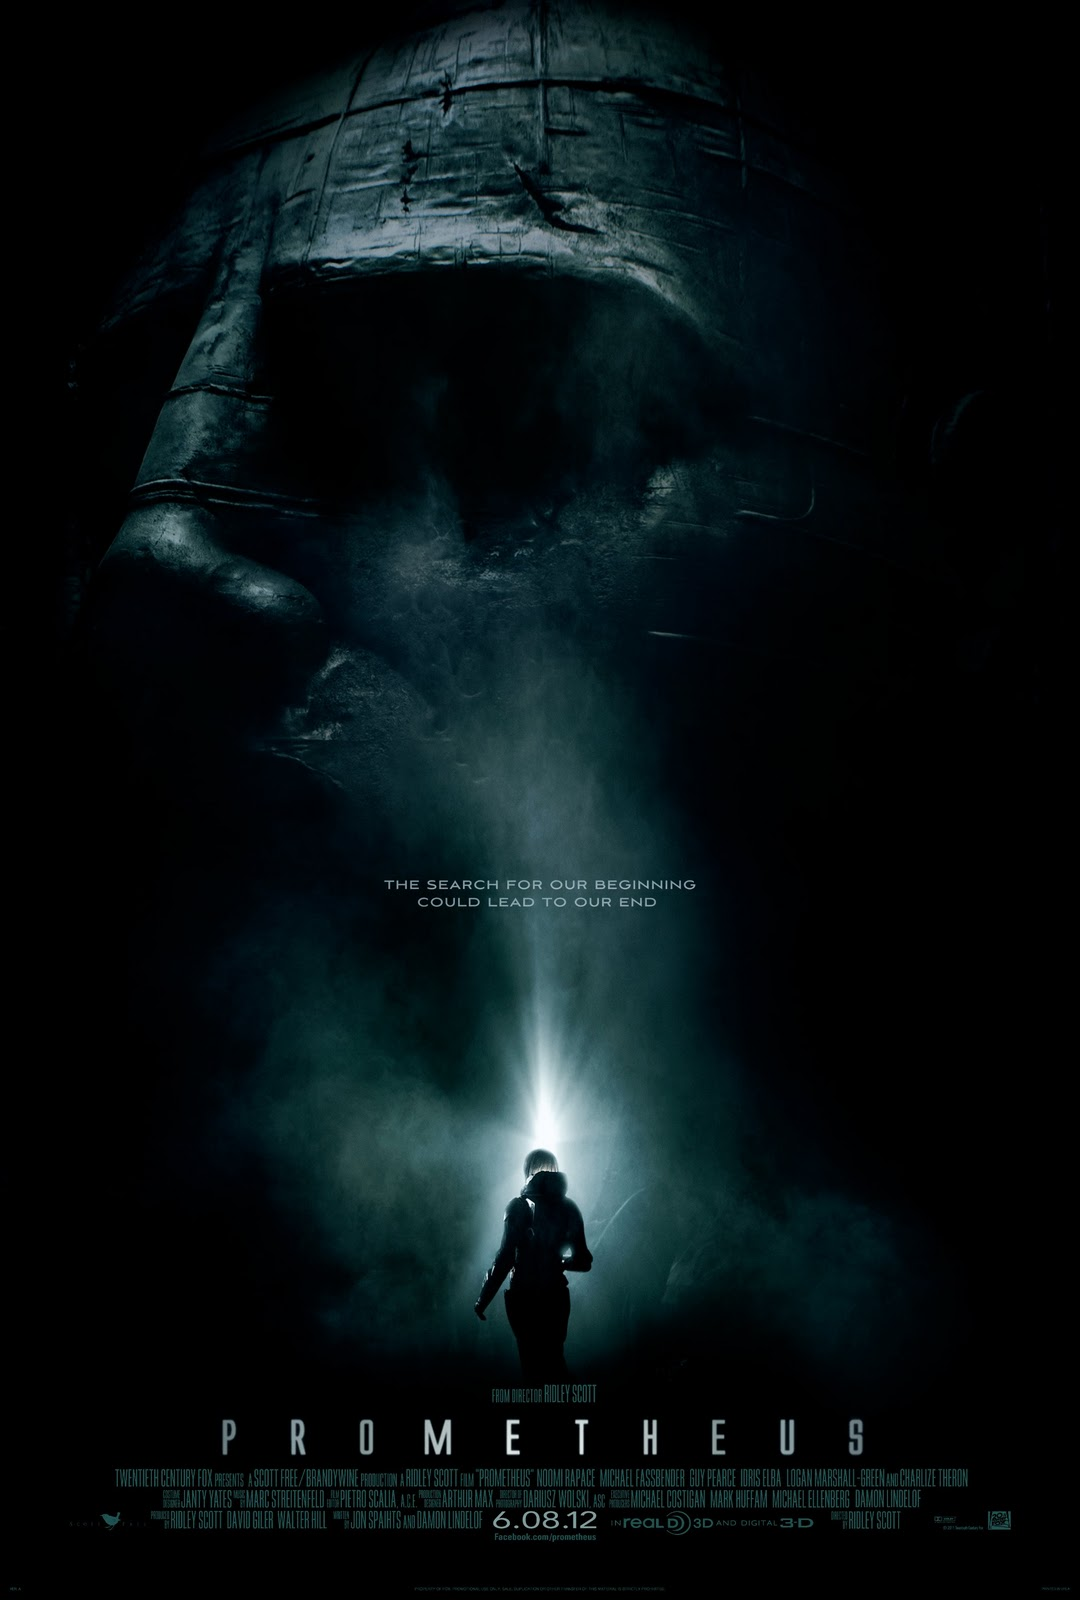 Prometheus Posters images